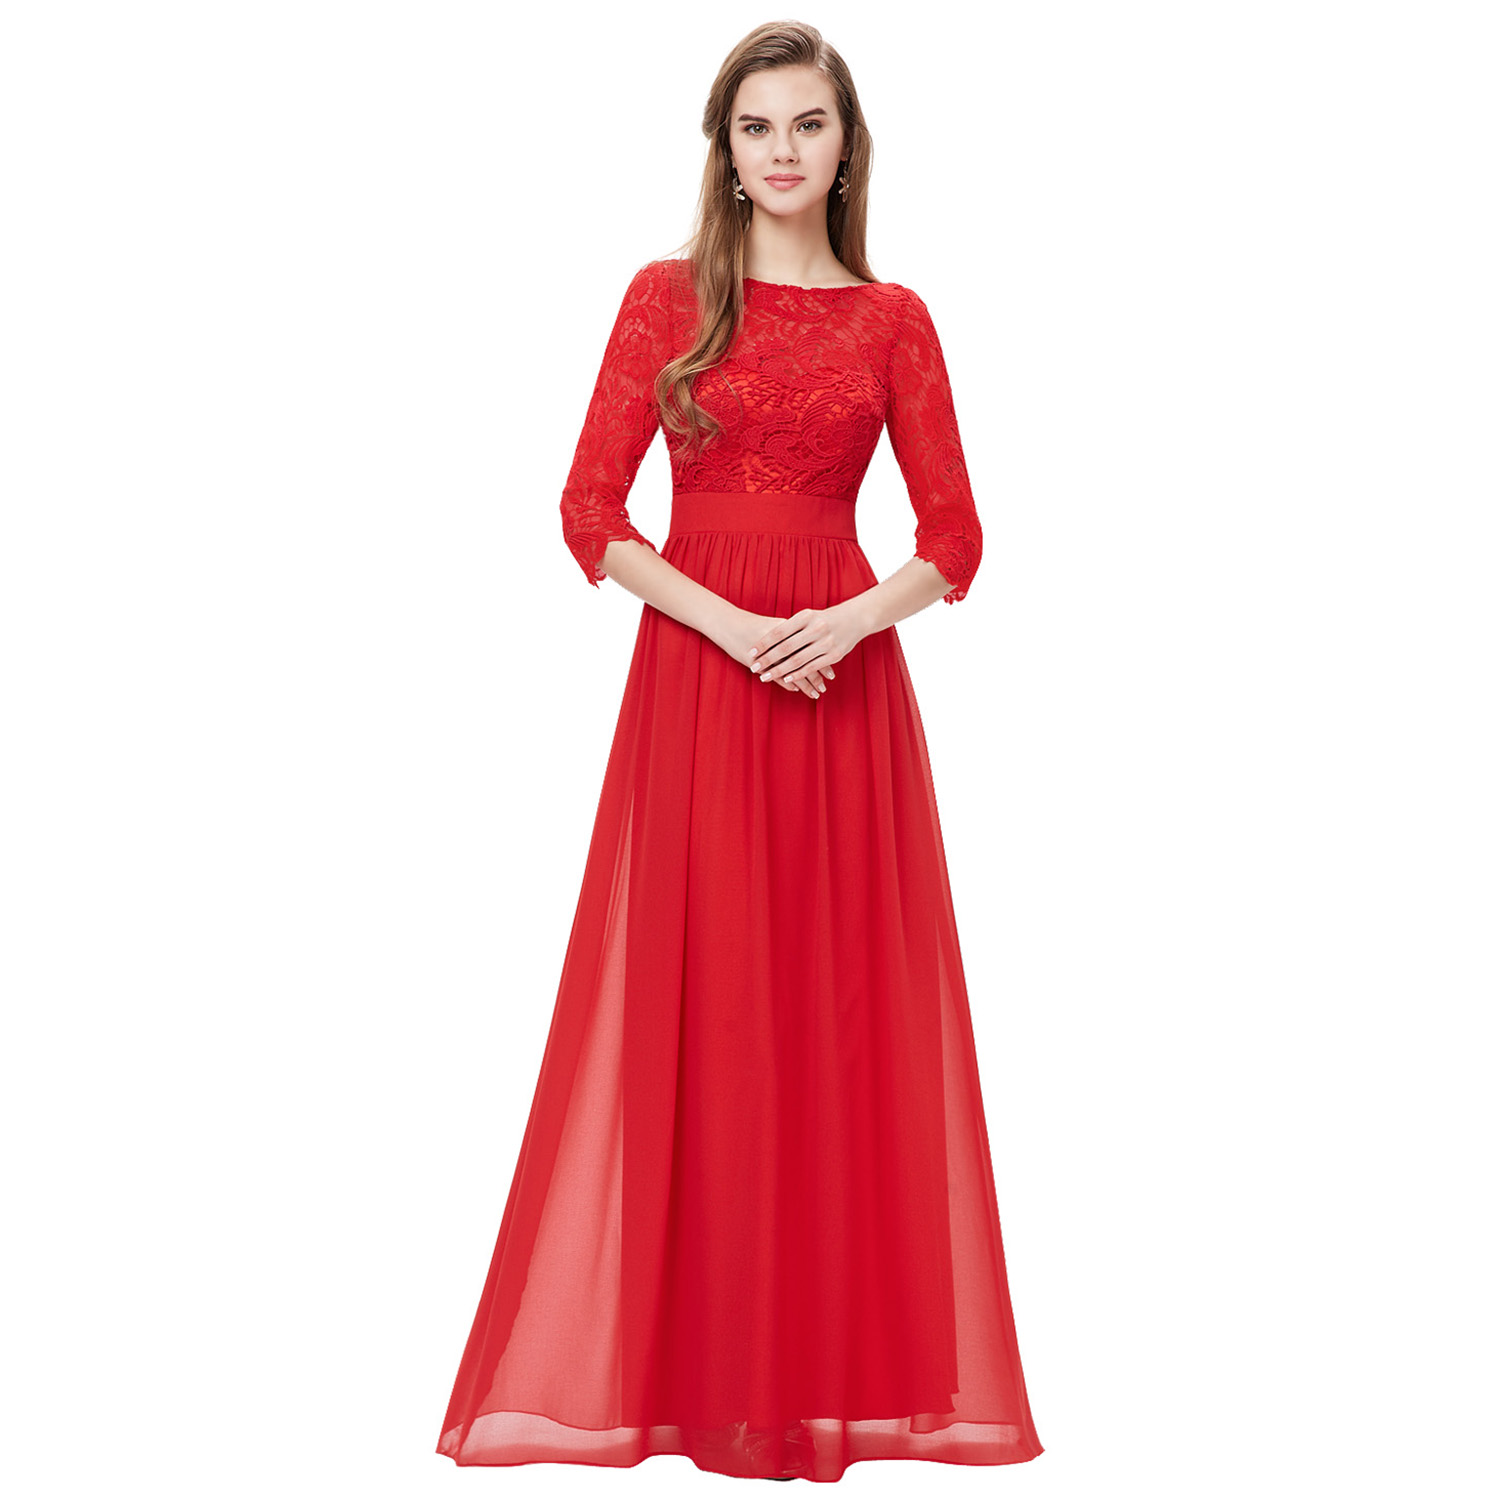 Womens 34 sleeves lace bridesmaid dresses evening prom gown 08412 womens 3 4 sleeves lace bridesmaid dresses evening ombrellifo Image collections